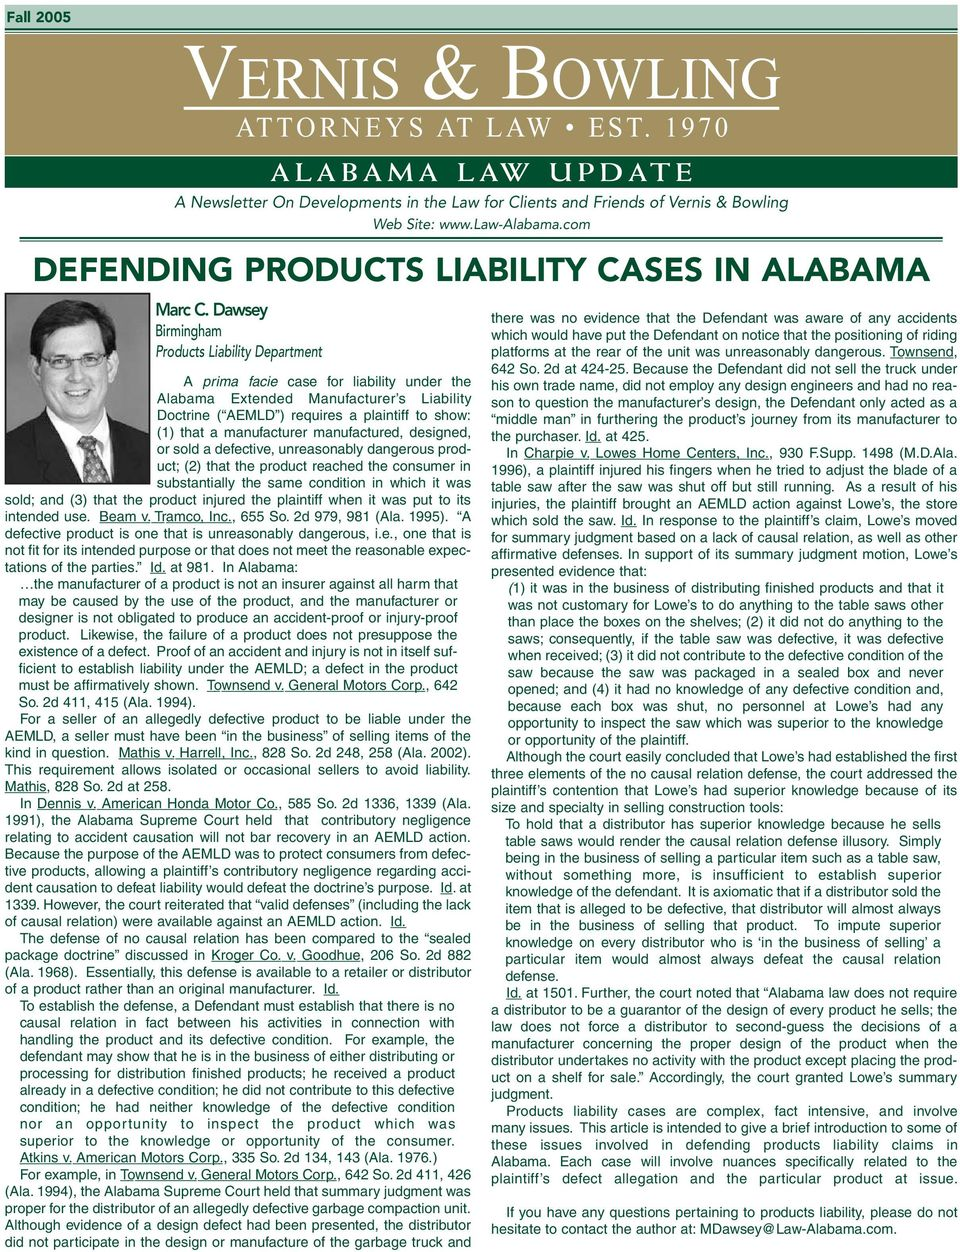 Dawsey Birmingham Products Liability Department A prima facie case for liability under the Alabama Extended Manufacturer s Liability Doctrine ( AEMLD ) requires a plaintiff to show: (1) that a